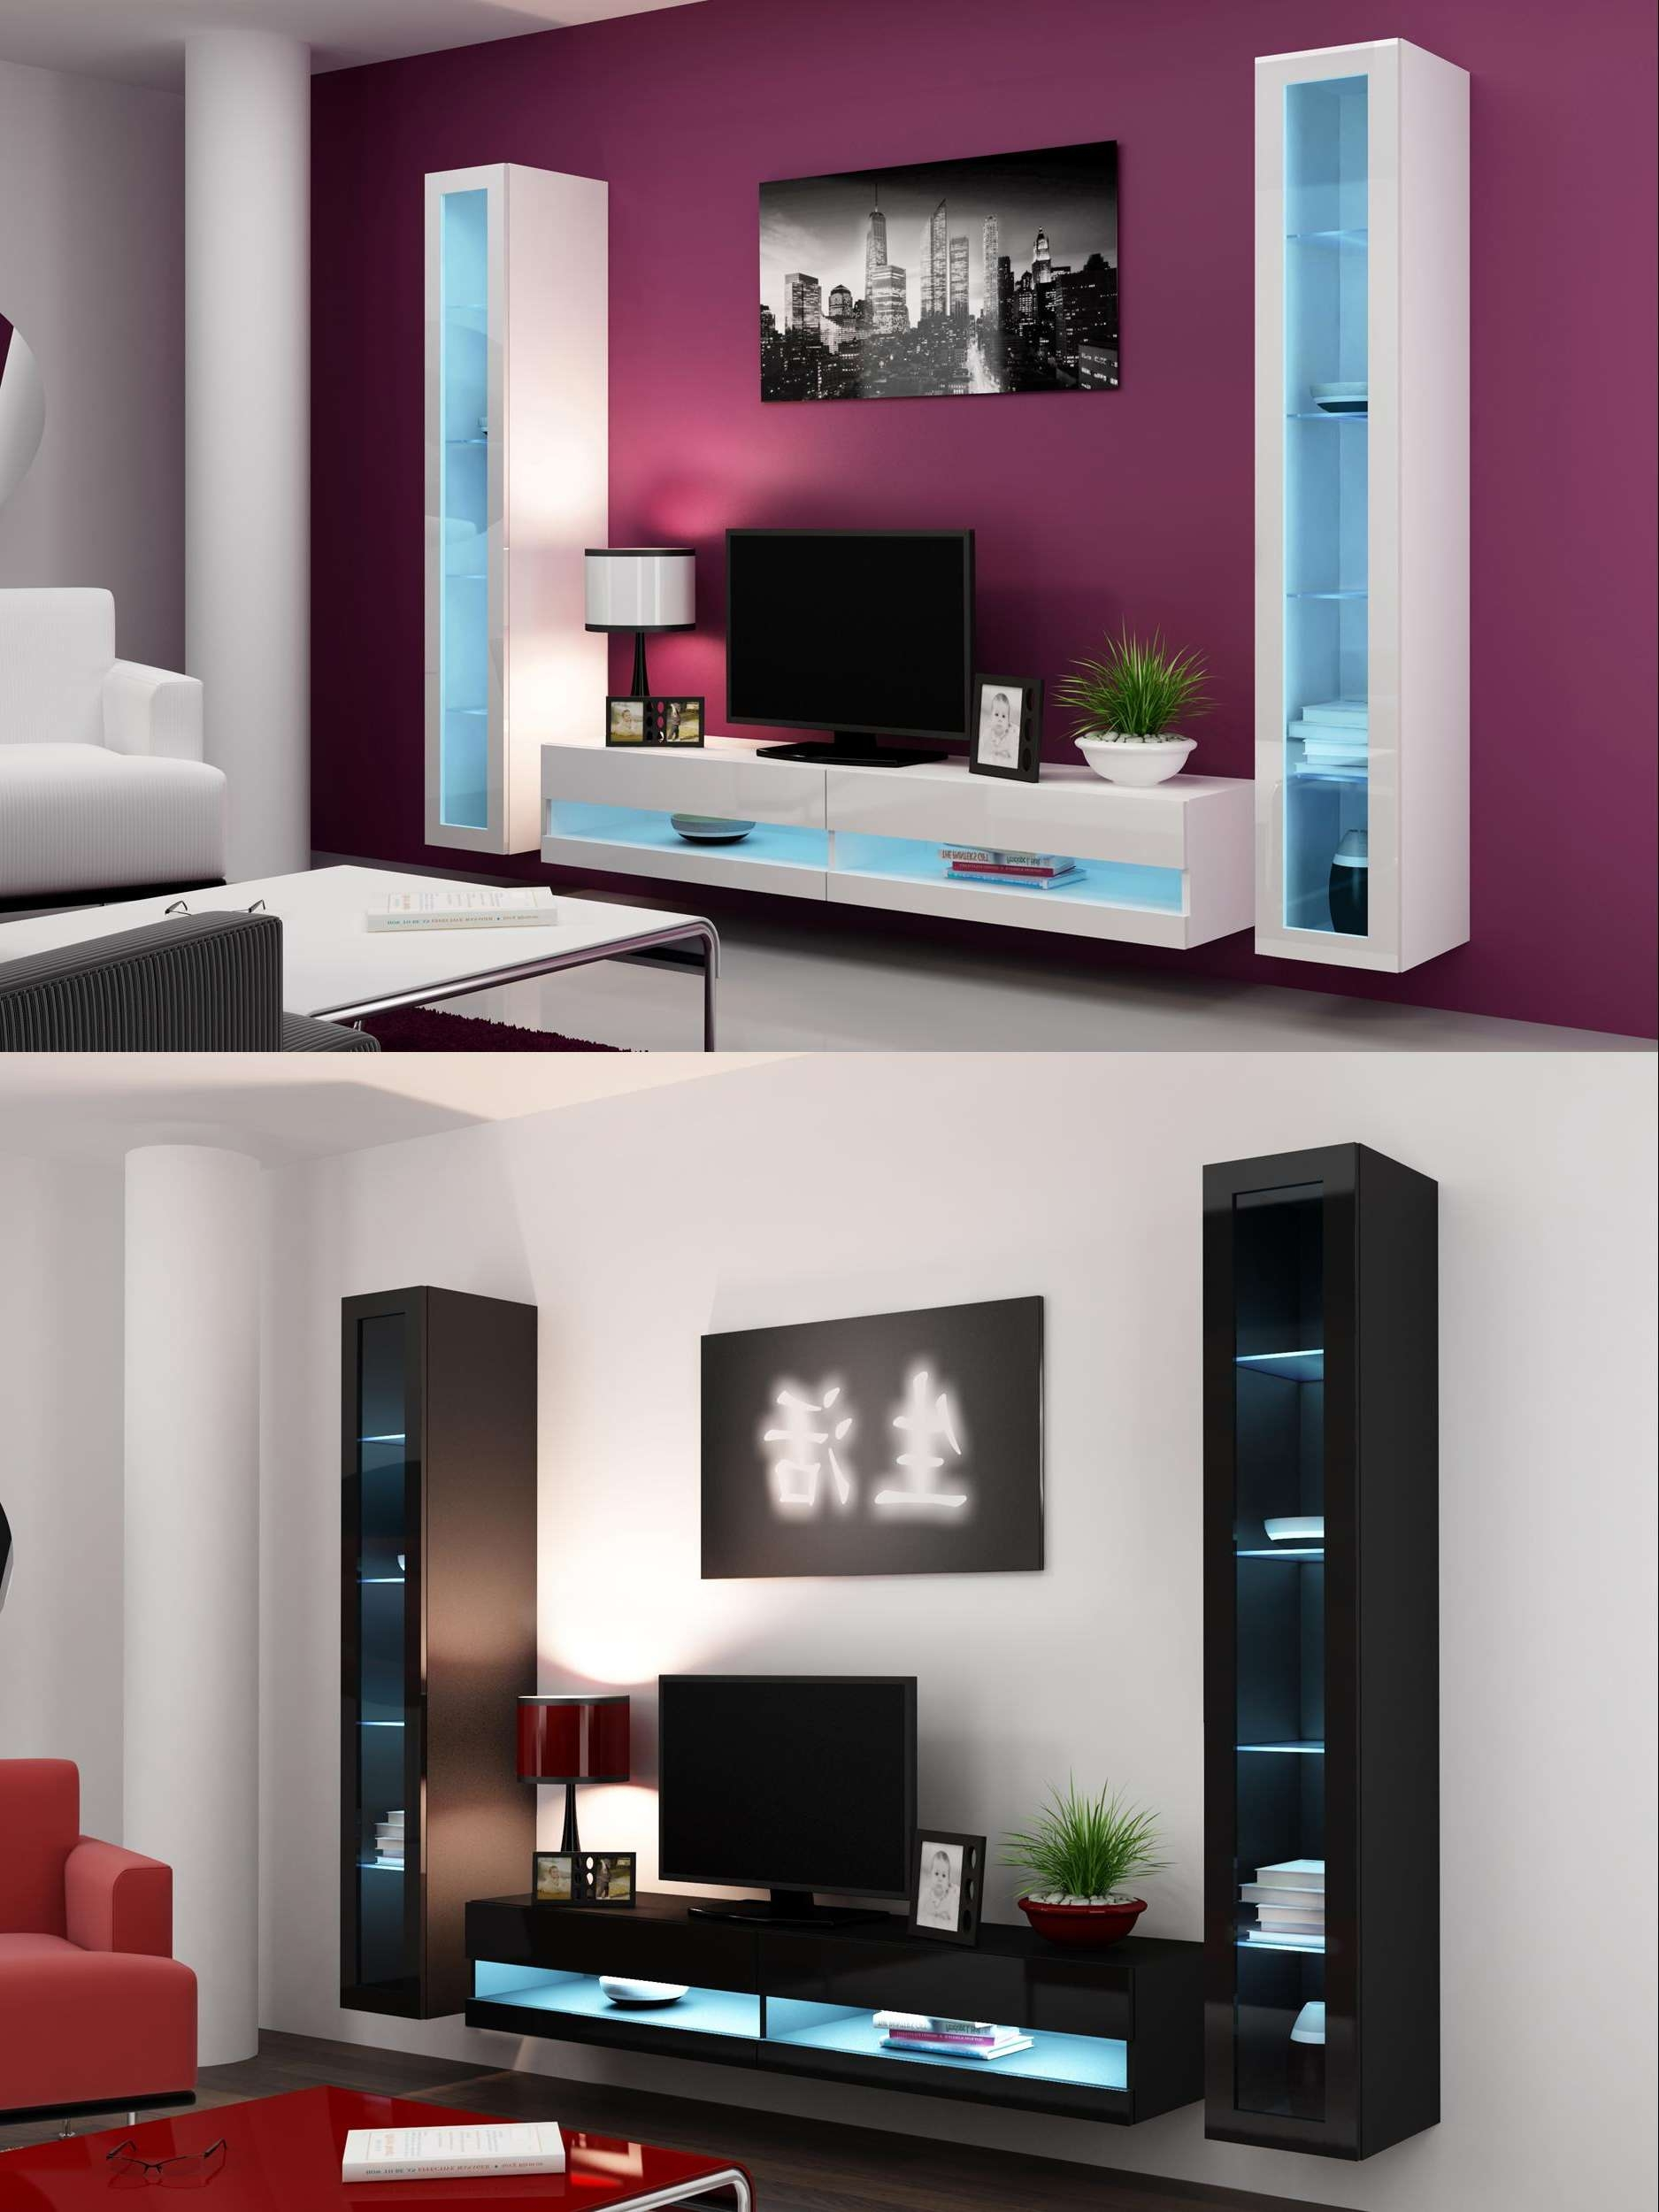 High Gloss Living Room Set With Led Lights, Tv Stand, Wall Mounted With Regard To High Gloss Tv Cabinets (View 6 of 20)